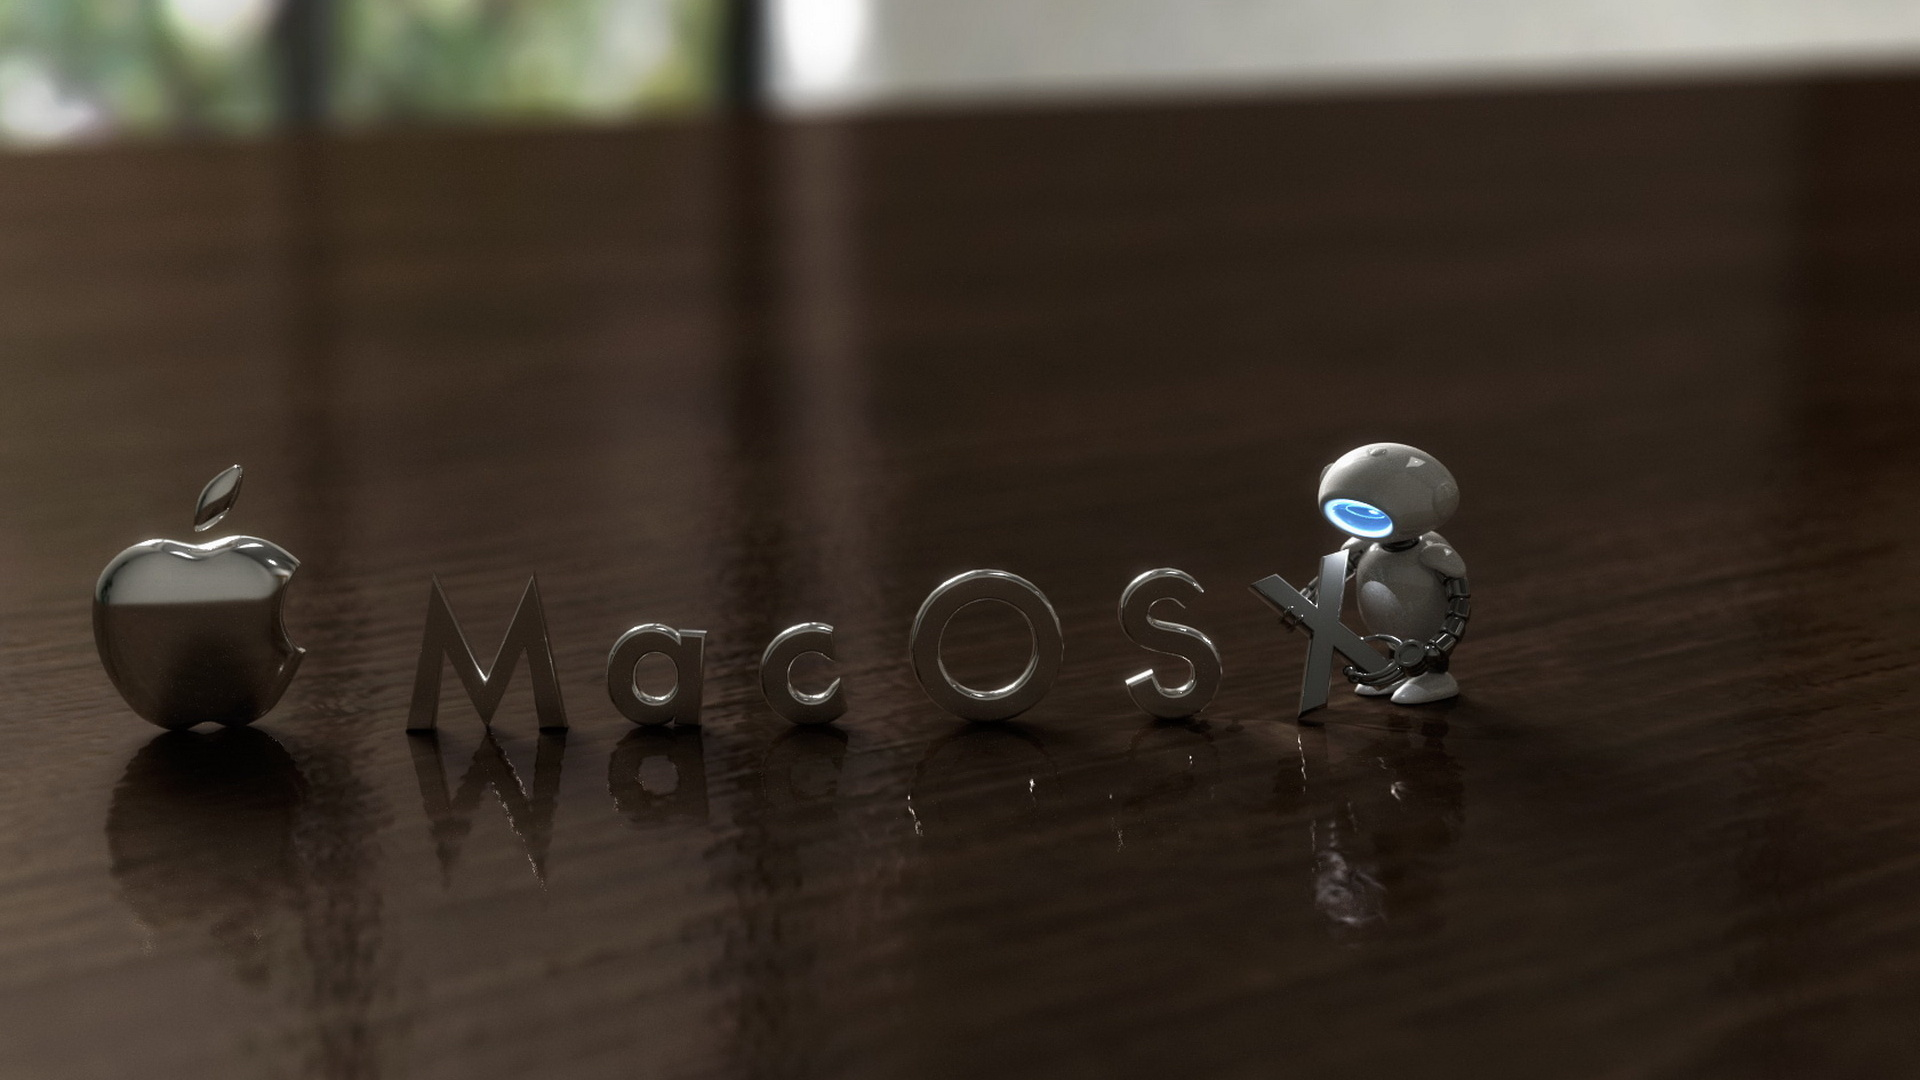 Apple Mac Os Robot Wallpaper